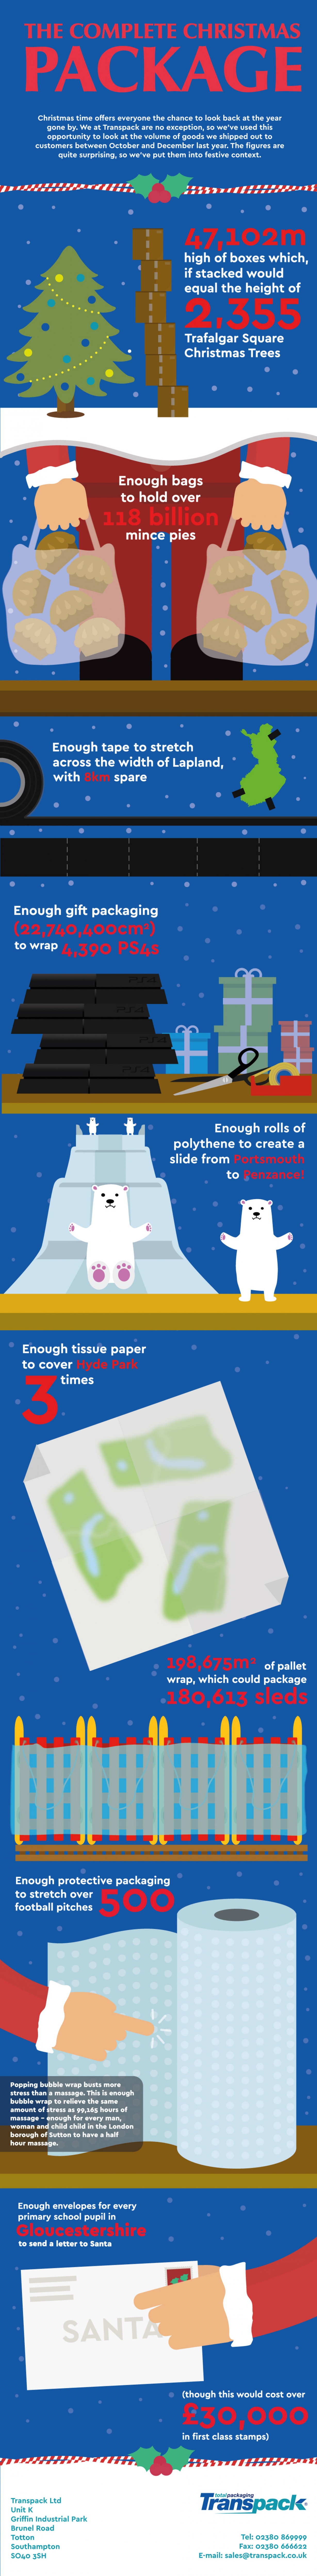 The Complete Christmas Package Infographic